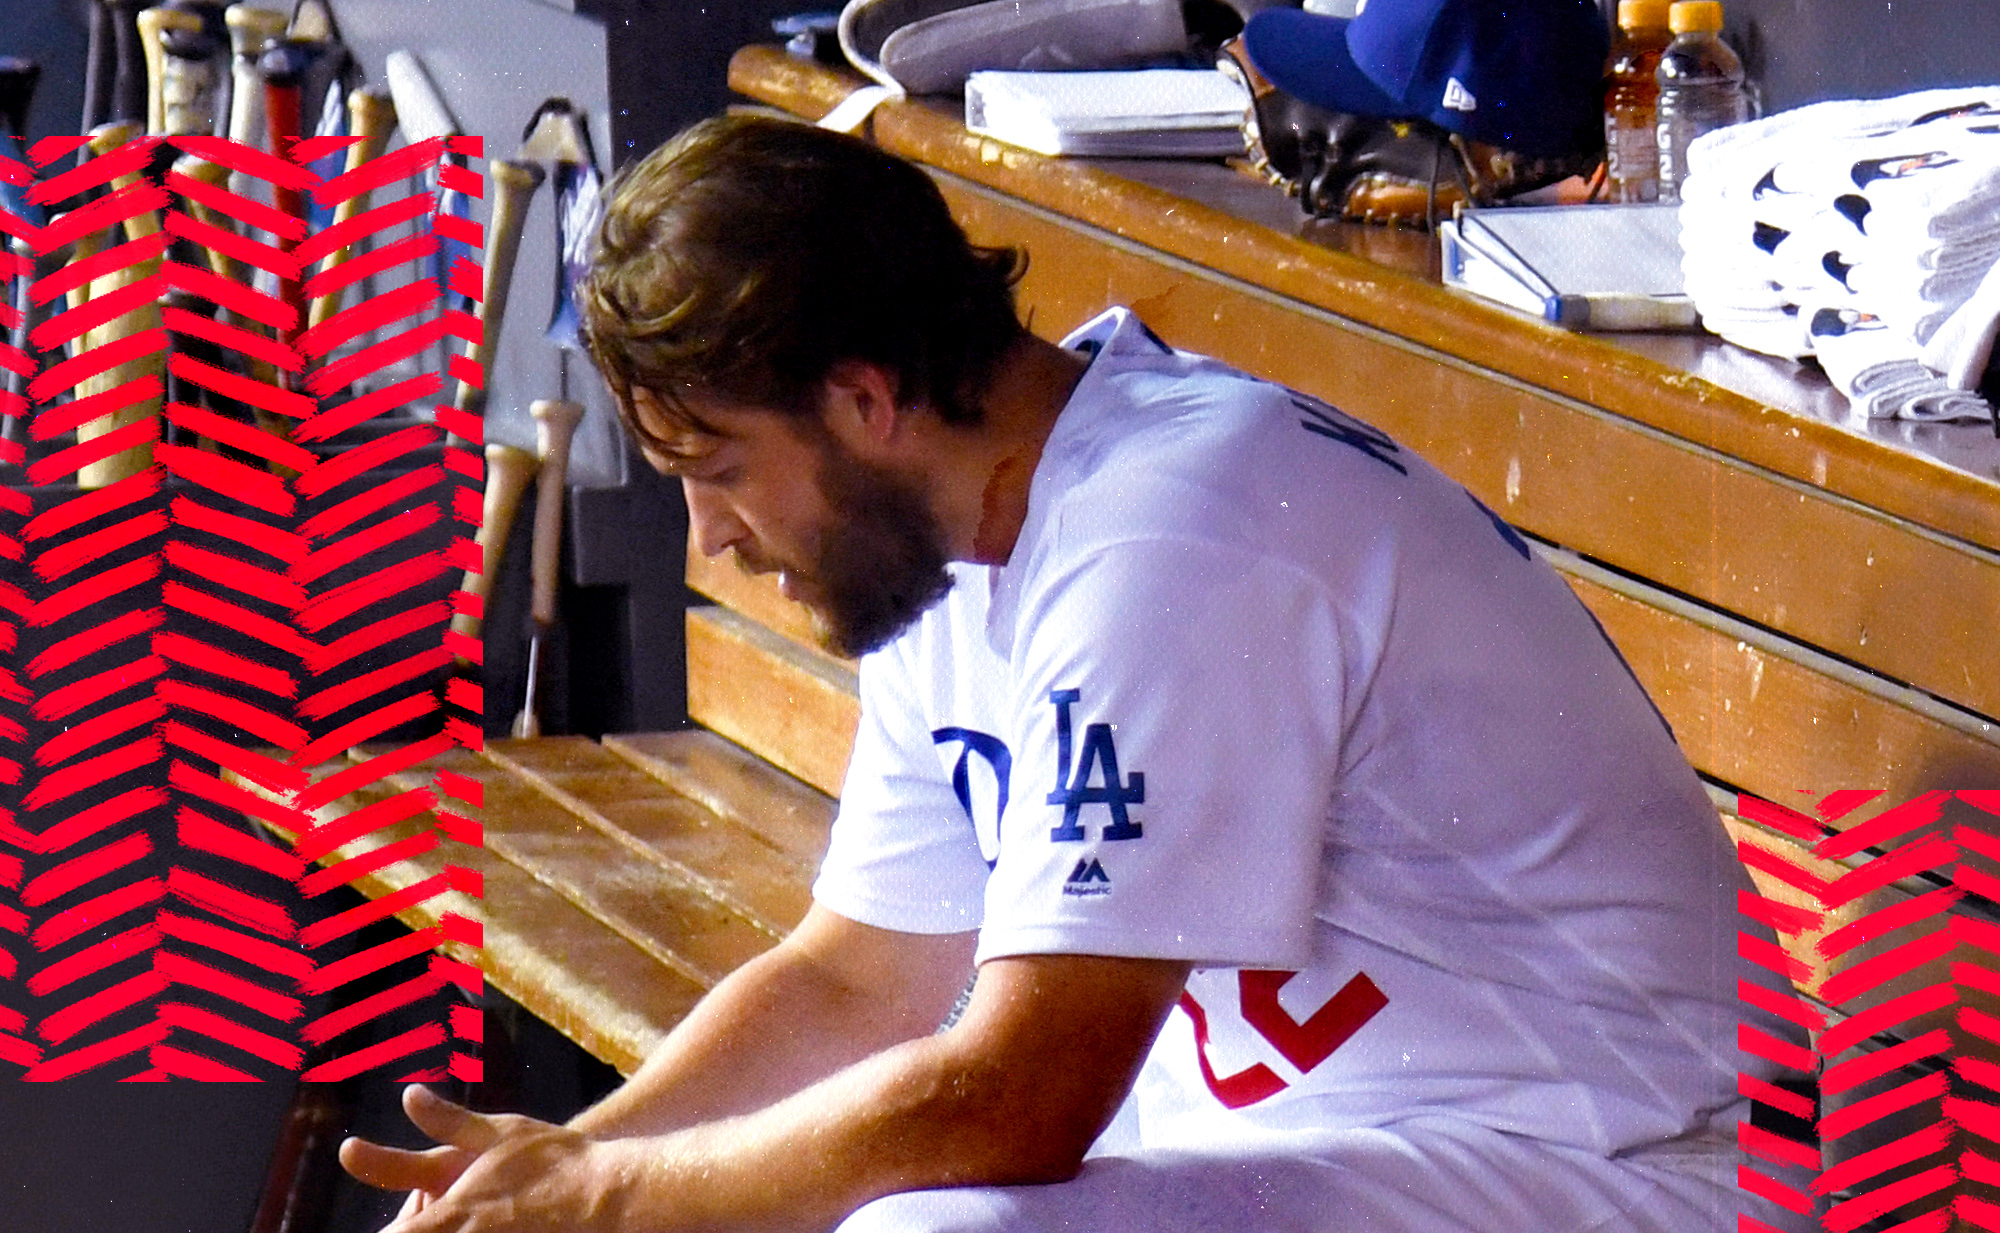 Clayton Kershaw sitting alone in the Dodgers' dugout after losing Game 5 of the NLDS